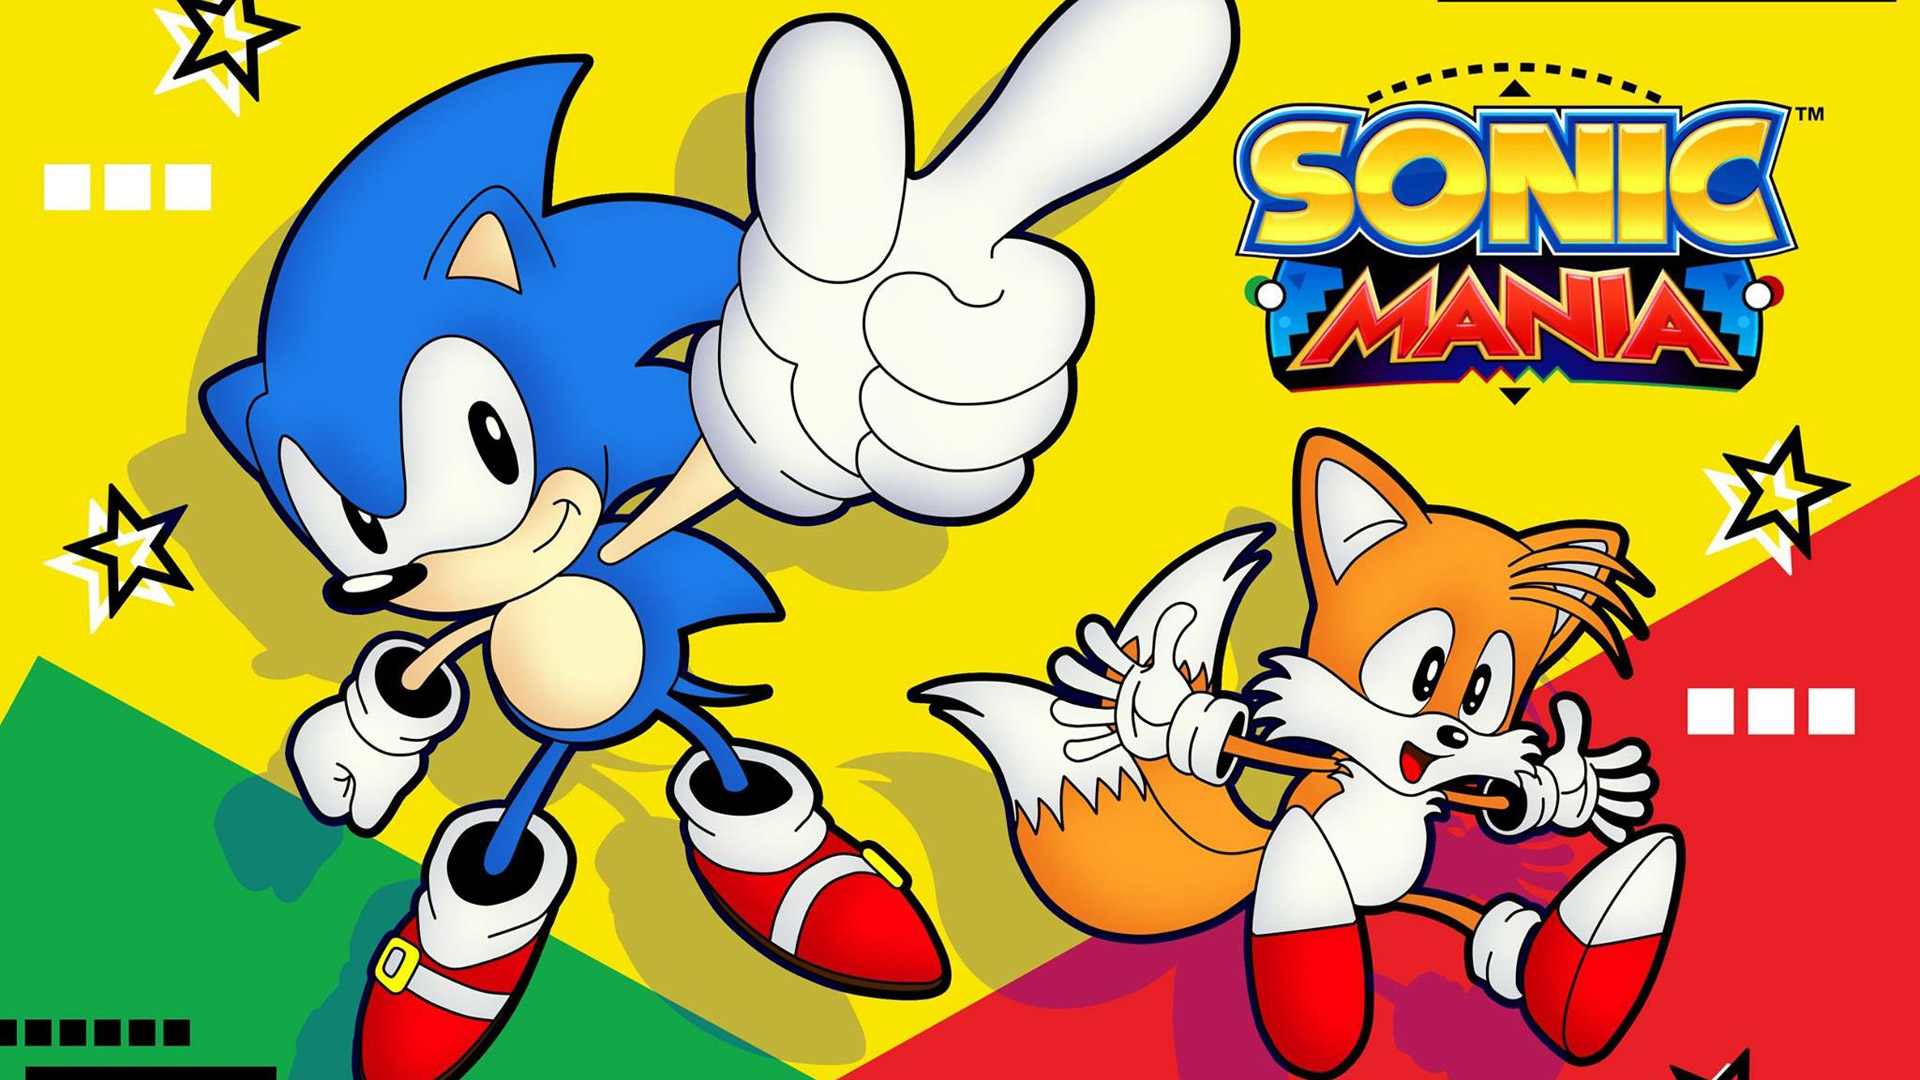 Free Sonic Mania Wallpaper in 1920x1080